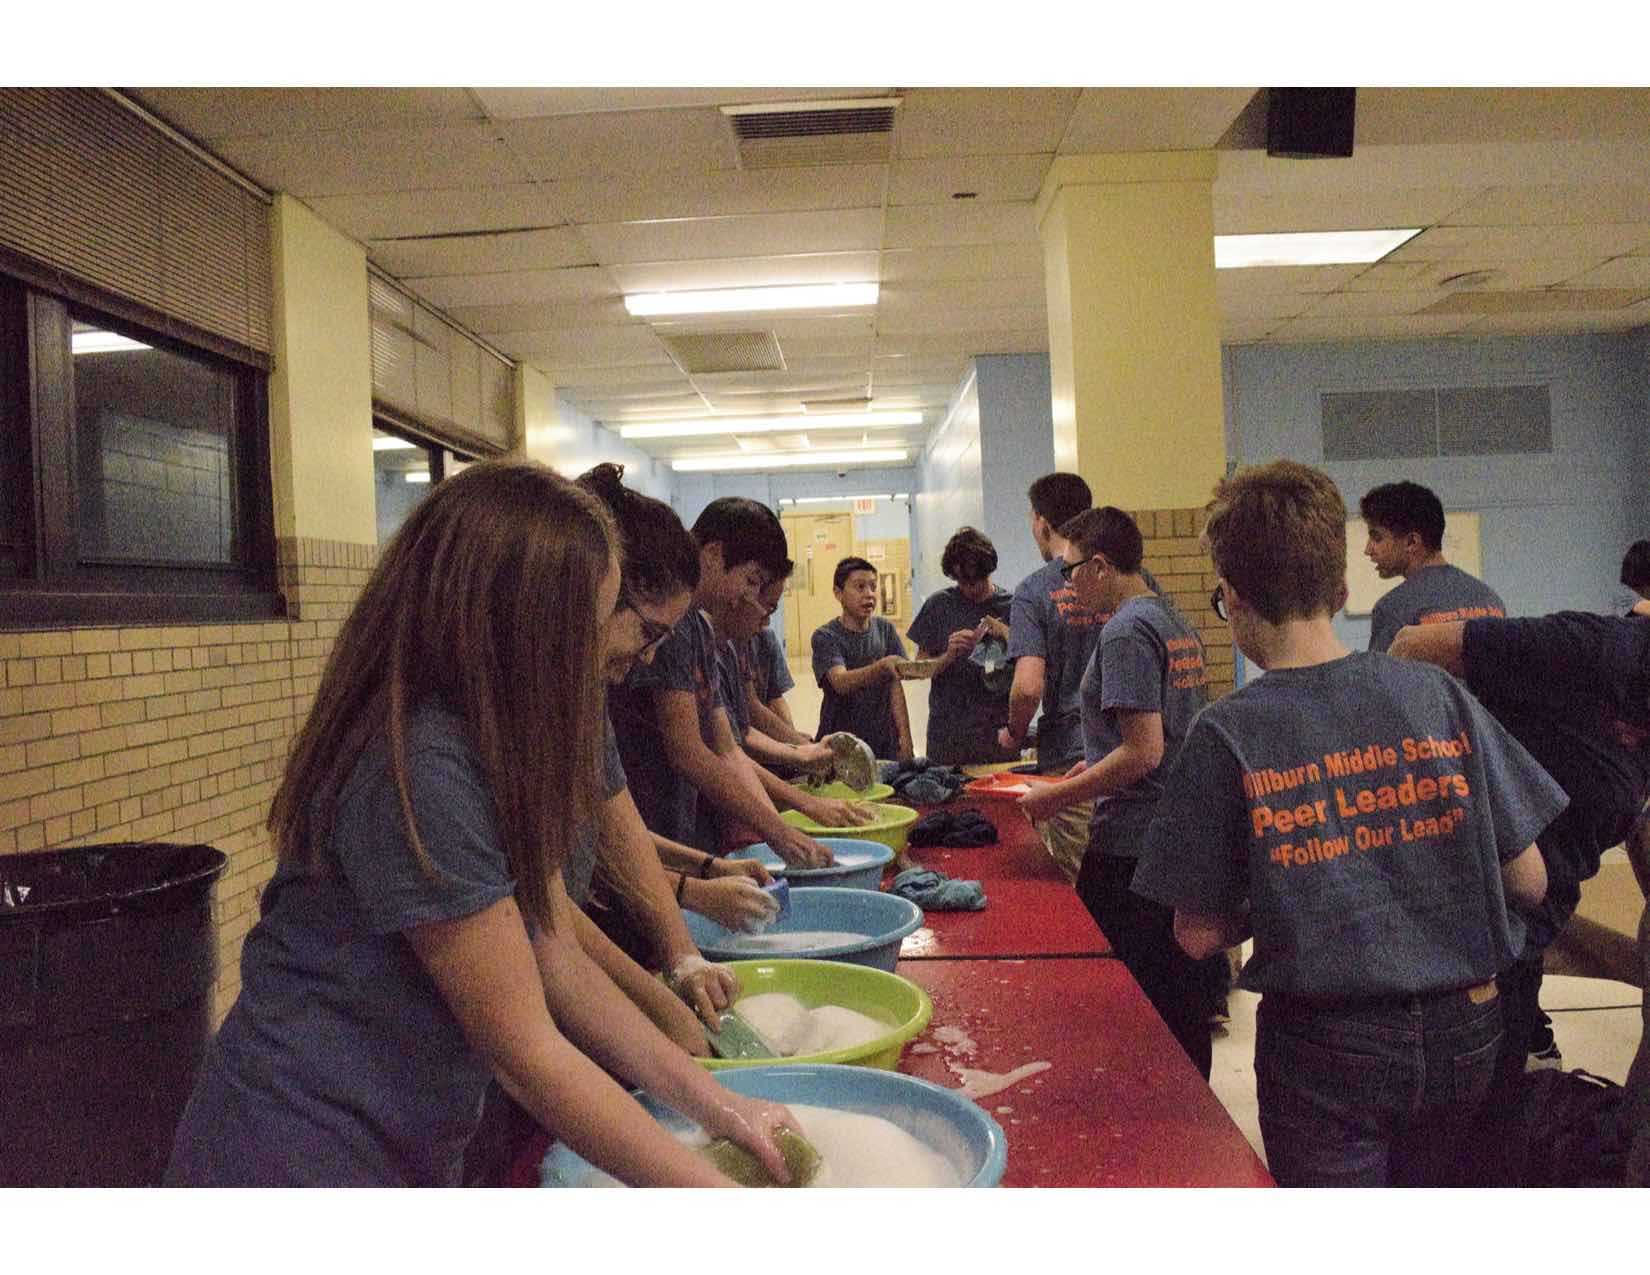 MMS Peer Leaders wash handmade bowls at the Empty Bowls event